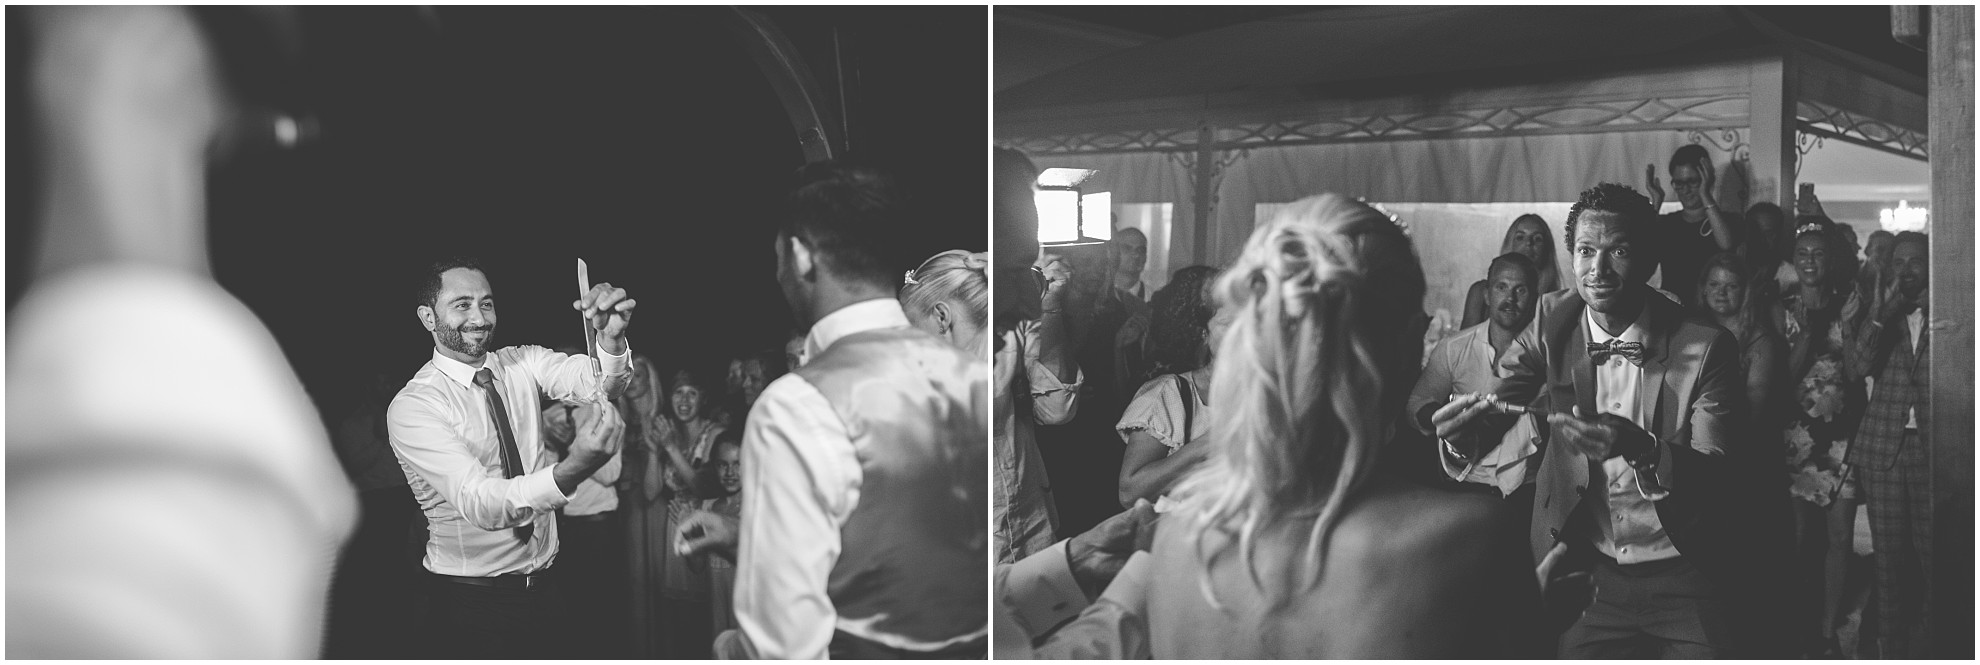 tuscany-wedding-photographer-castiglioncello-0112